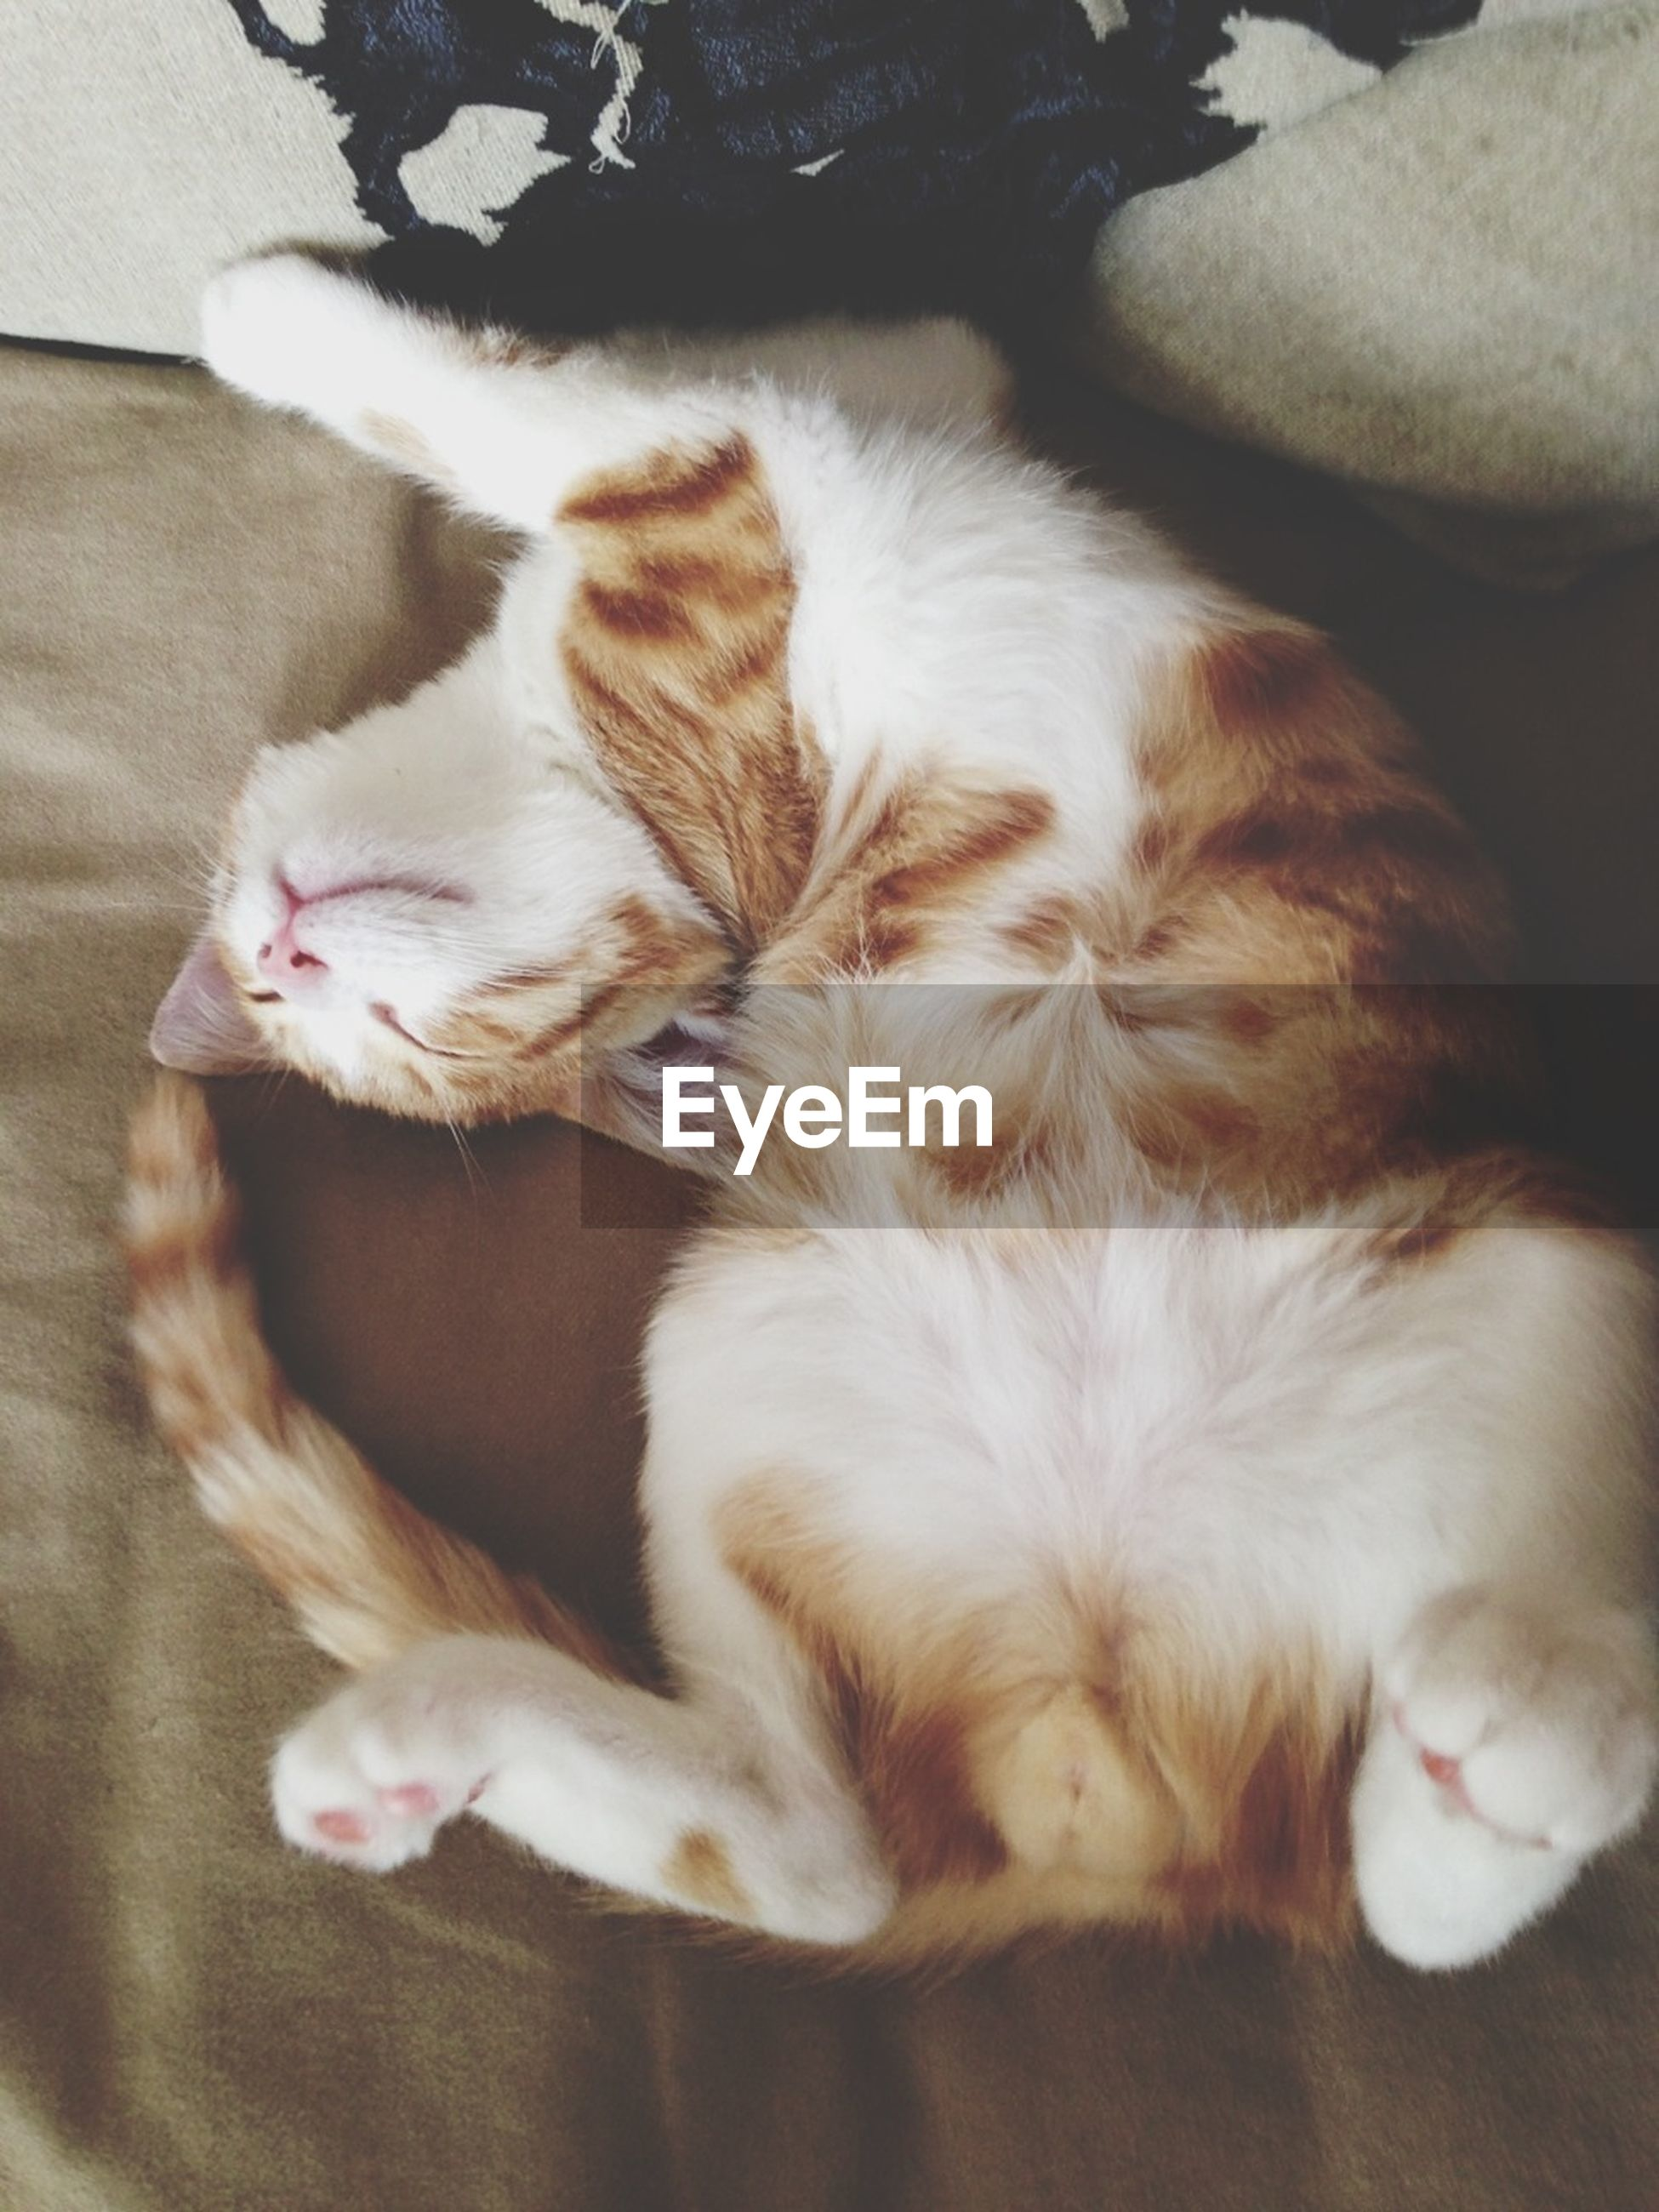 domestic animals, pets, mammal, animal themes, domestic cat, indoors, cat, one animal, relaxation, feline, sleeping, resting, lying down, eyes closed, whisker, home interior, high angle view, bed, two animals, home